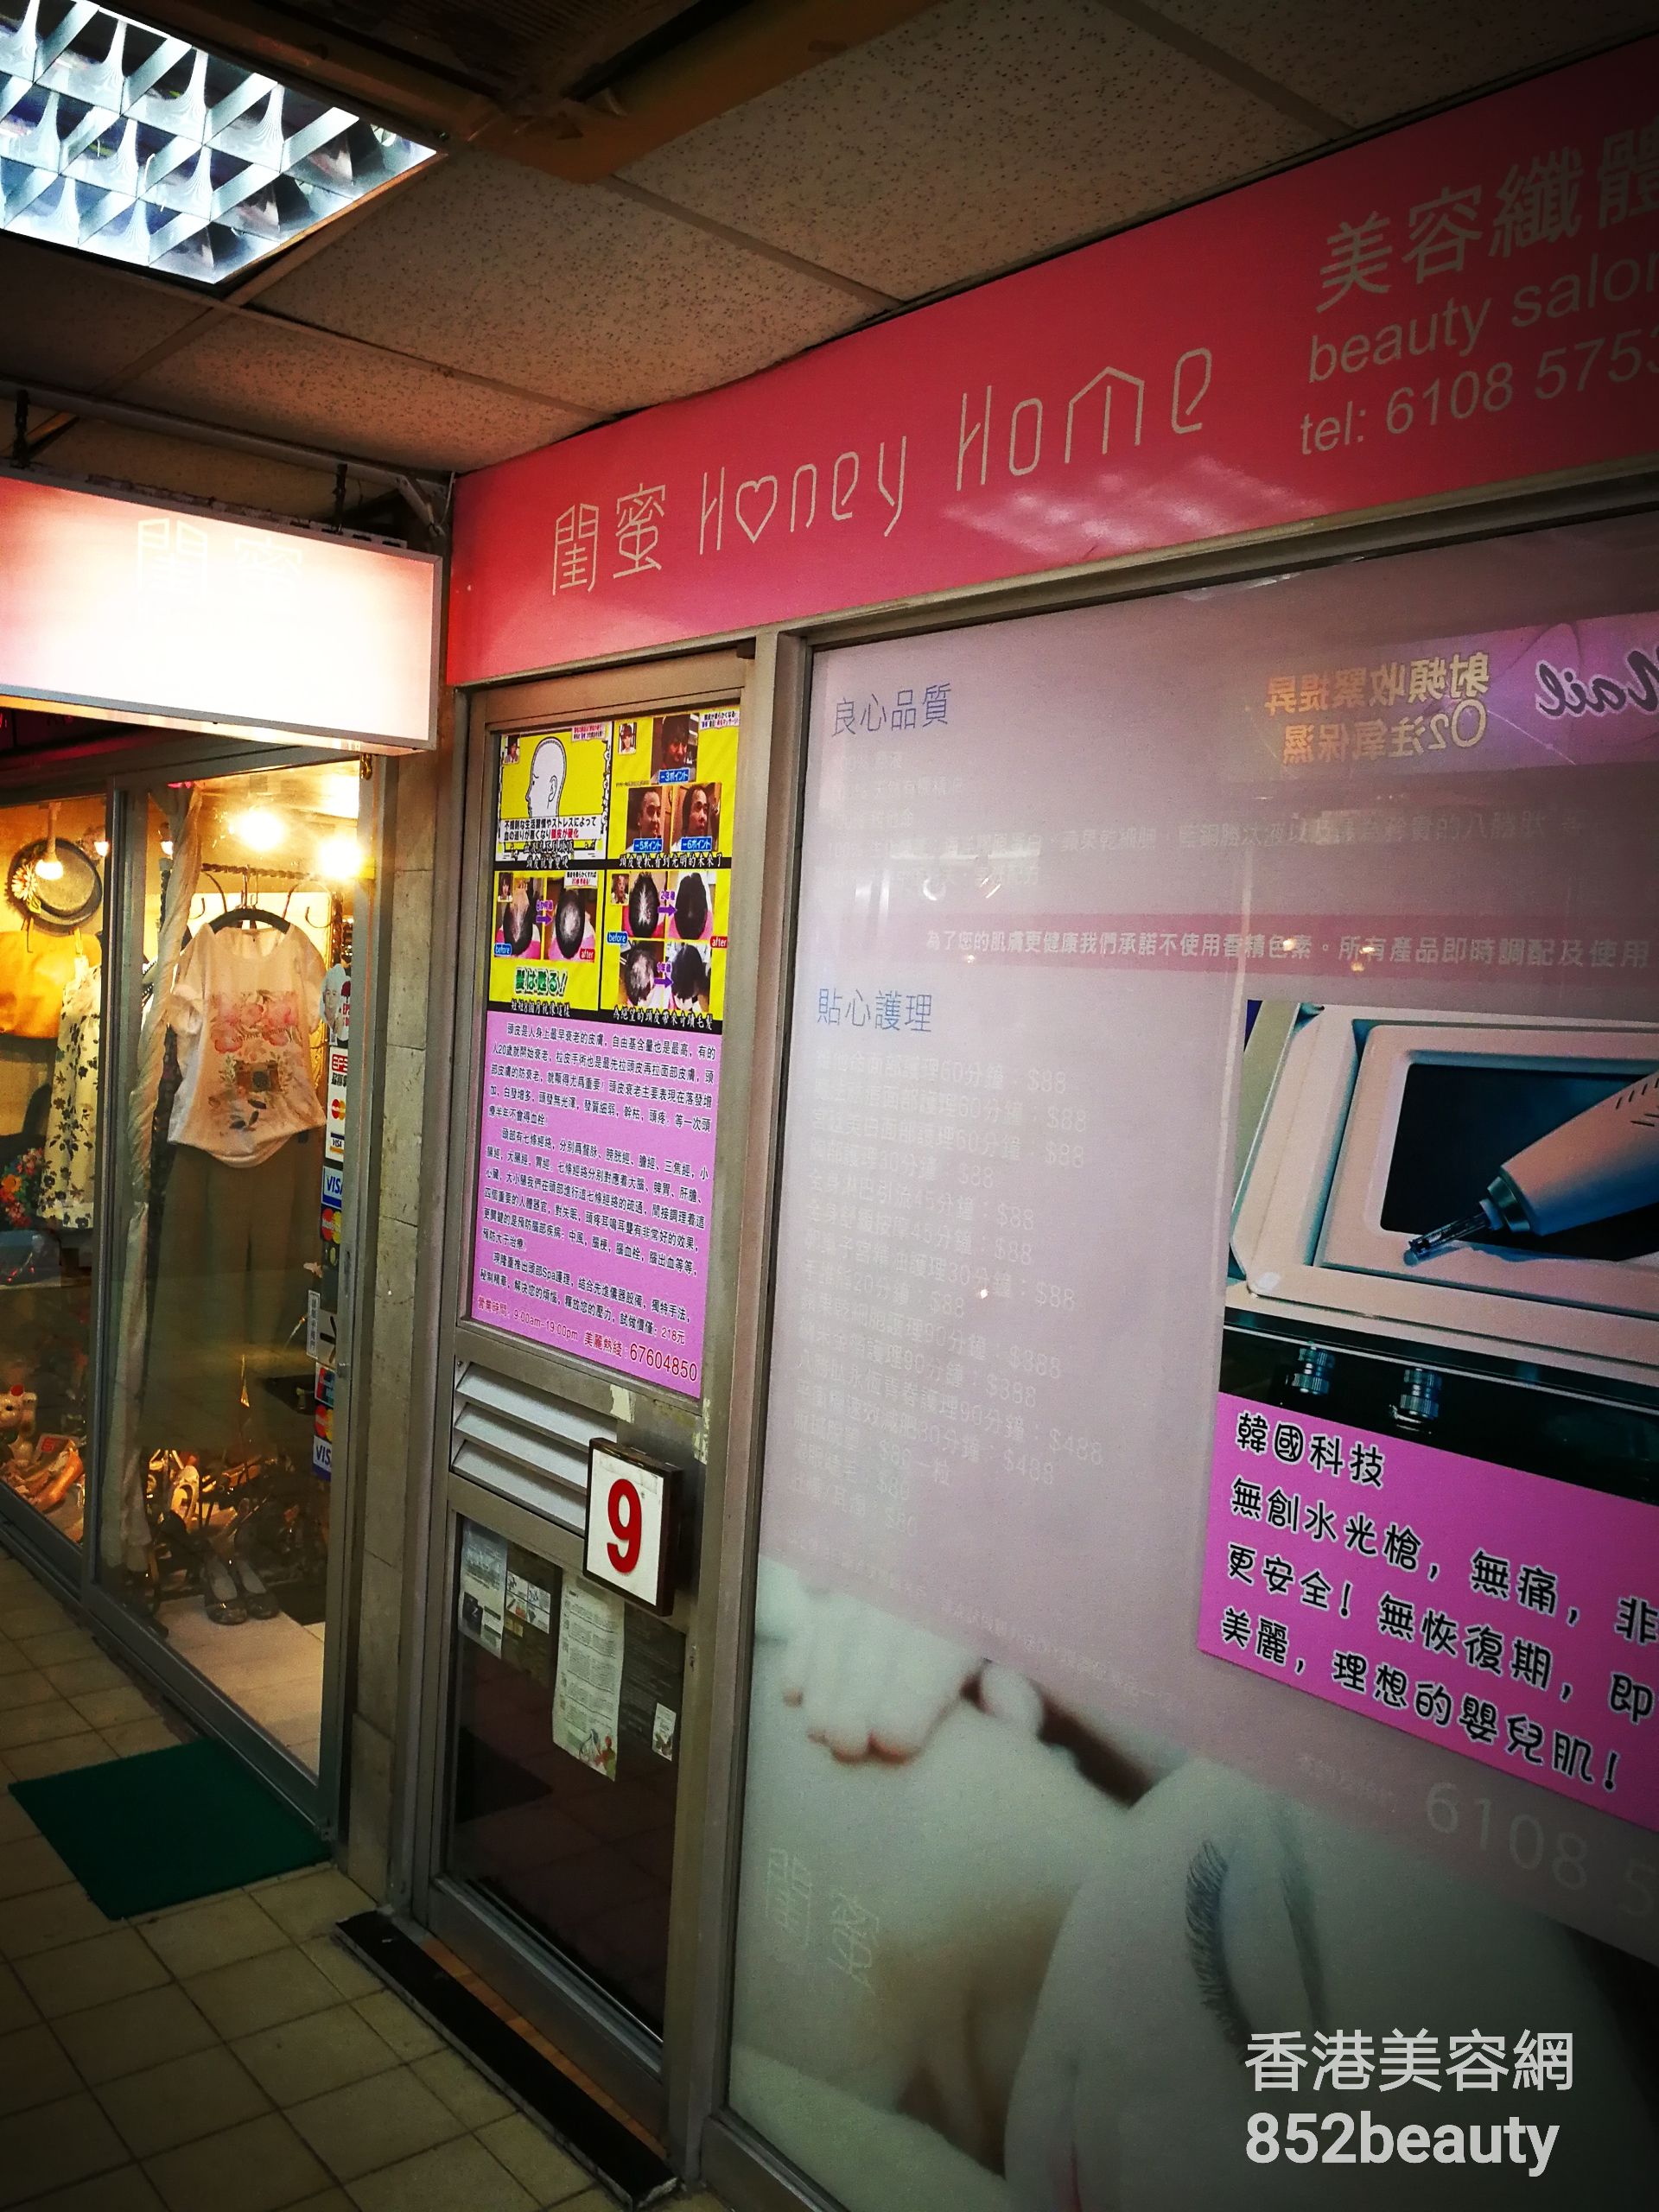 Hong Kong Beauty Salon: 閨蜜 Honey Home(美容院)